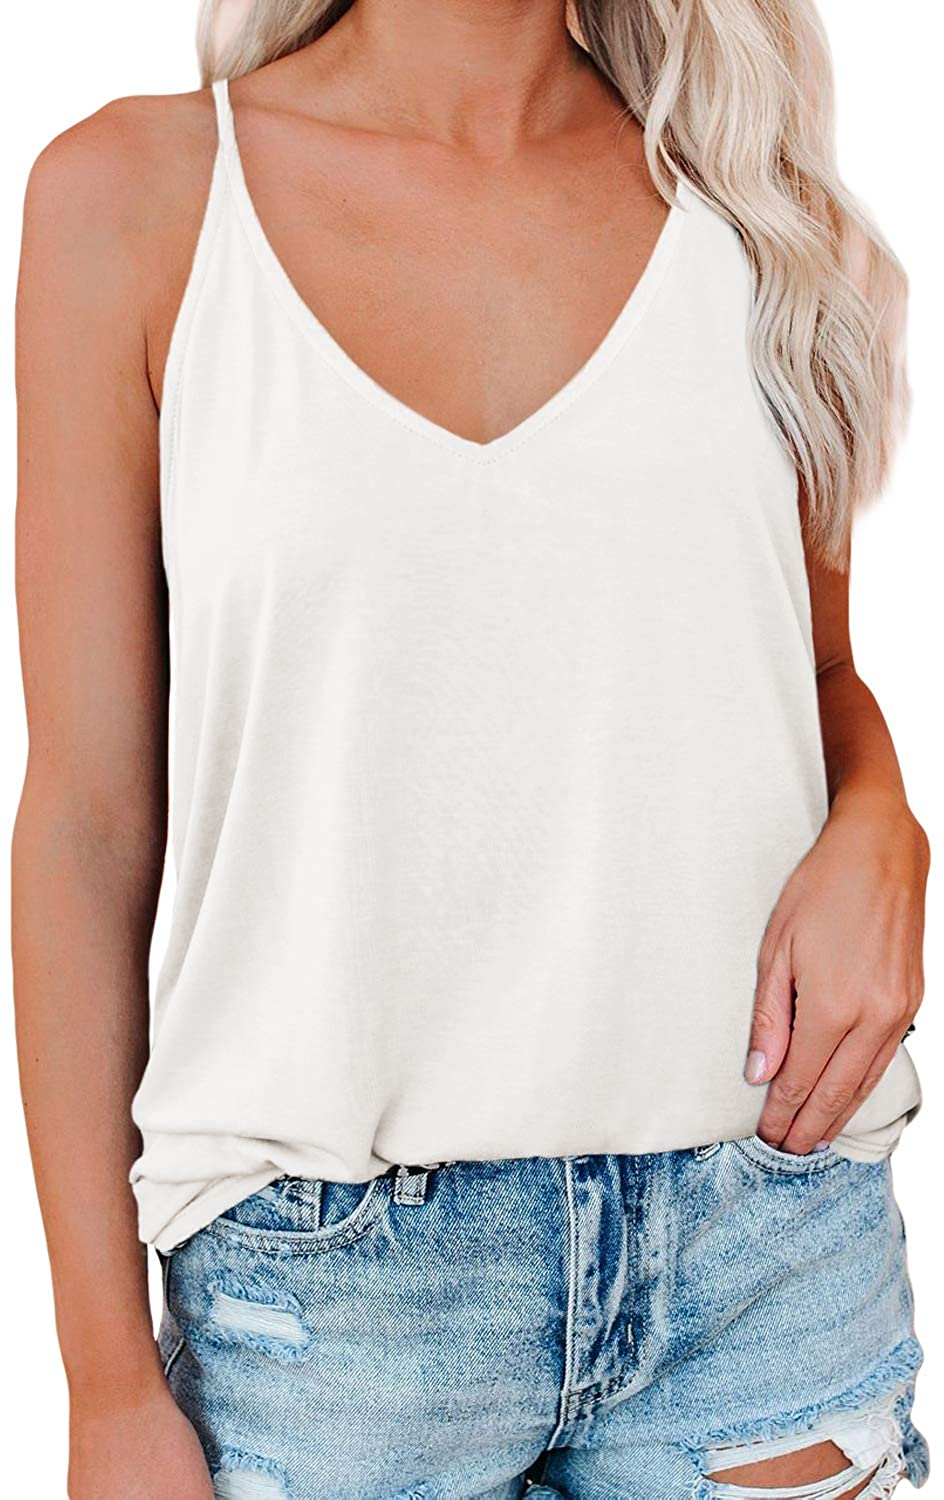 Spriolim Women's V Neck Strappy Cami Tank Tops Sleeveless Loose Casual Summer Blouse Shirts